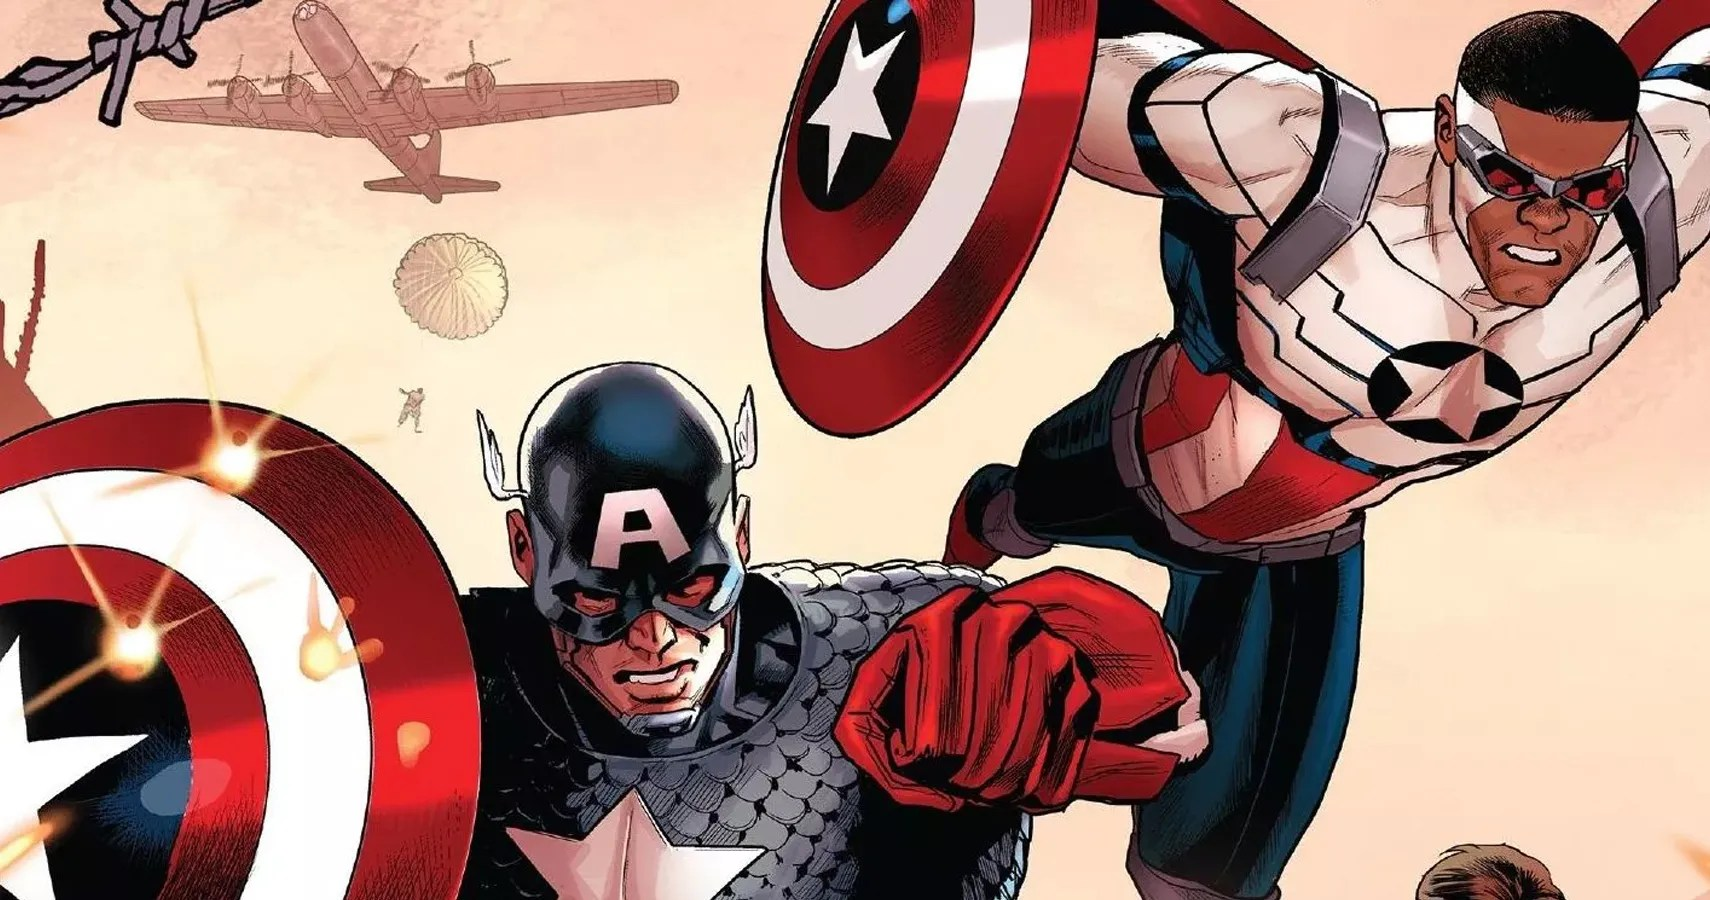 20 versions of captain america ranked worst to best | cbr